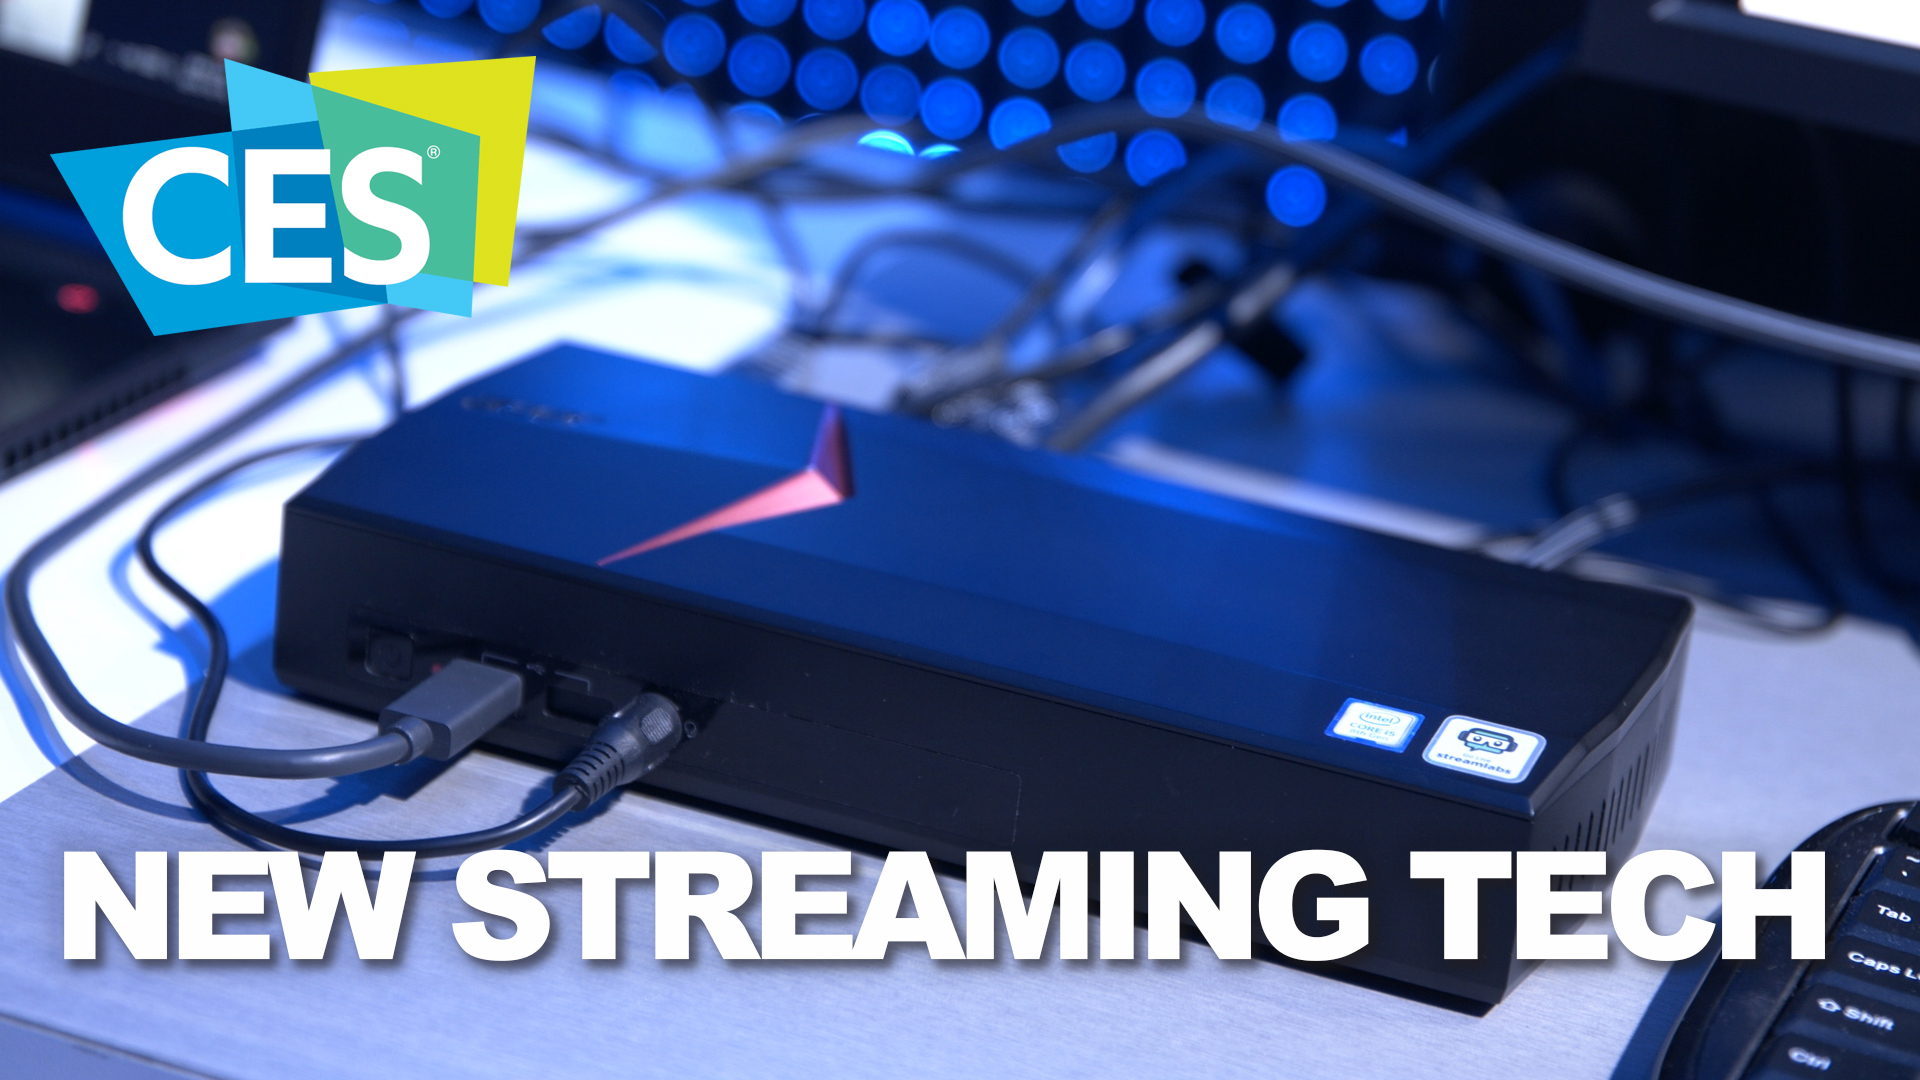 CES 2019: How Intel and Streamlabs are making game streaming